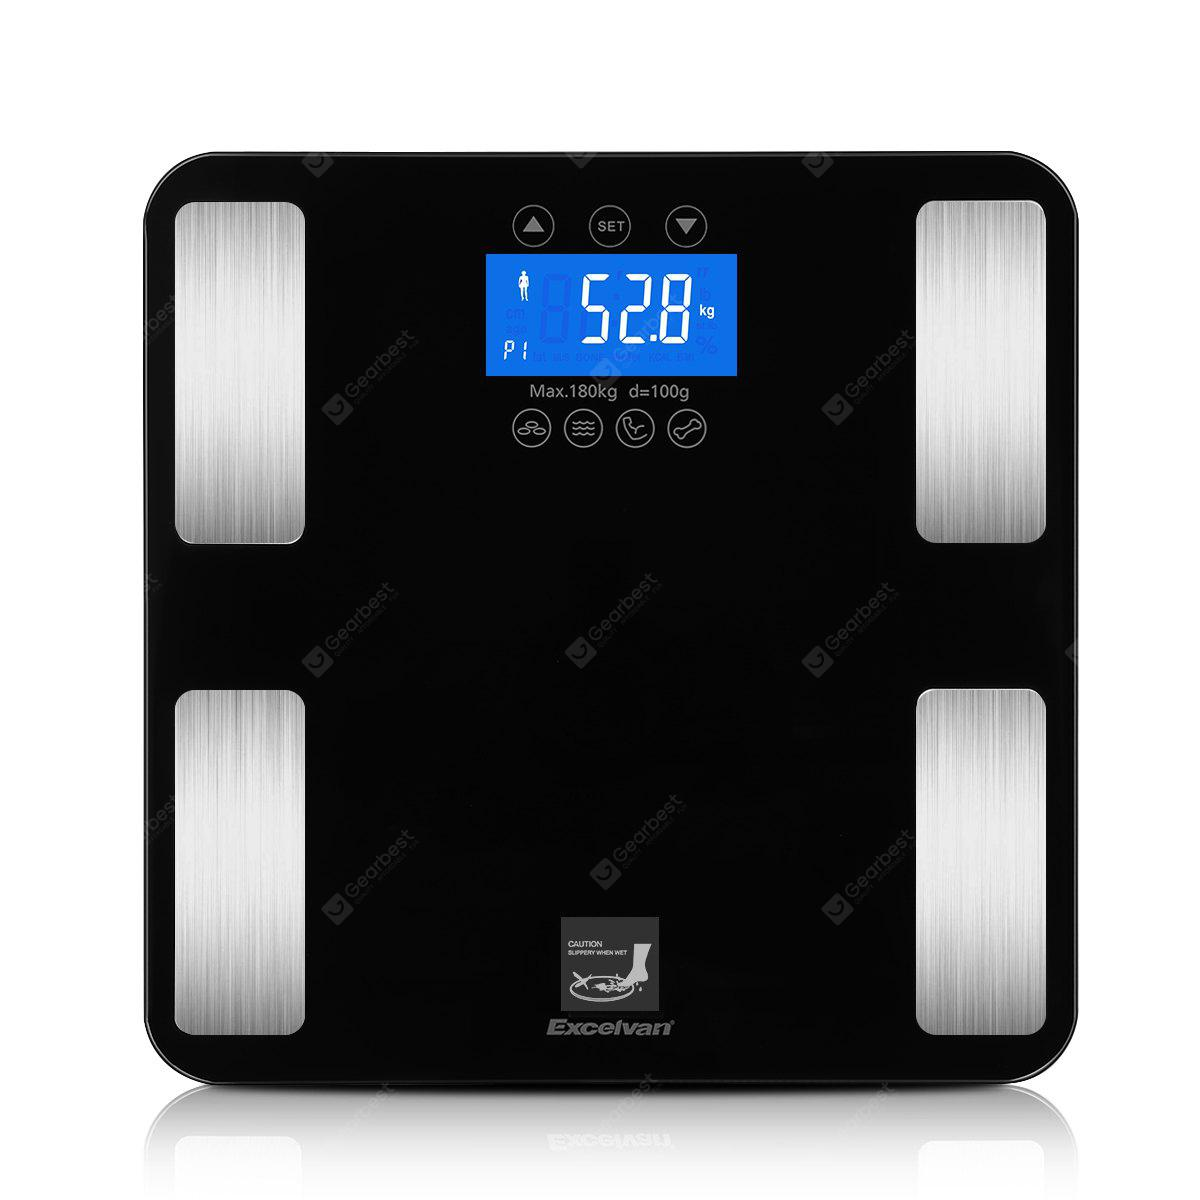 . Excelvan Touch 400 lb Digital Body Fat Scale with Tempered Glass Platform   Smart Step on Technology  10 User Recognition  Measures up to 7 Parameters